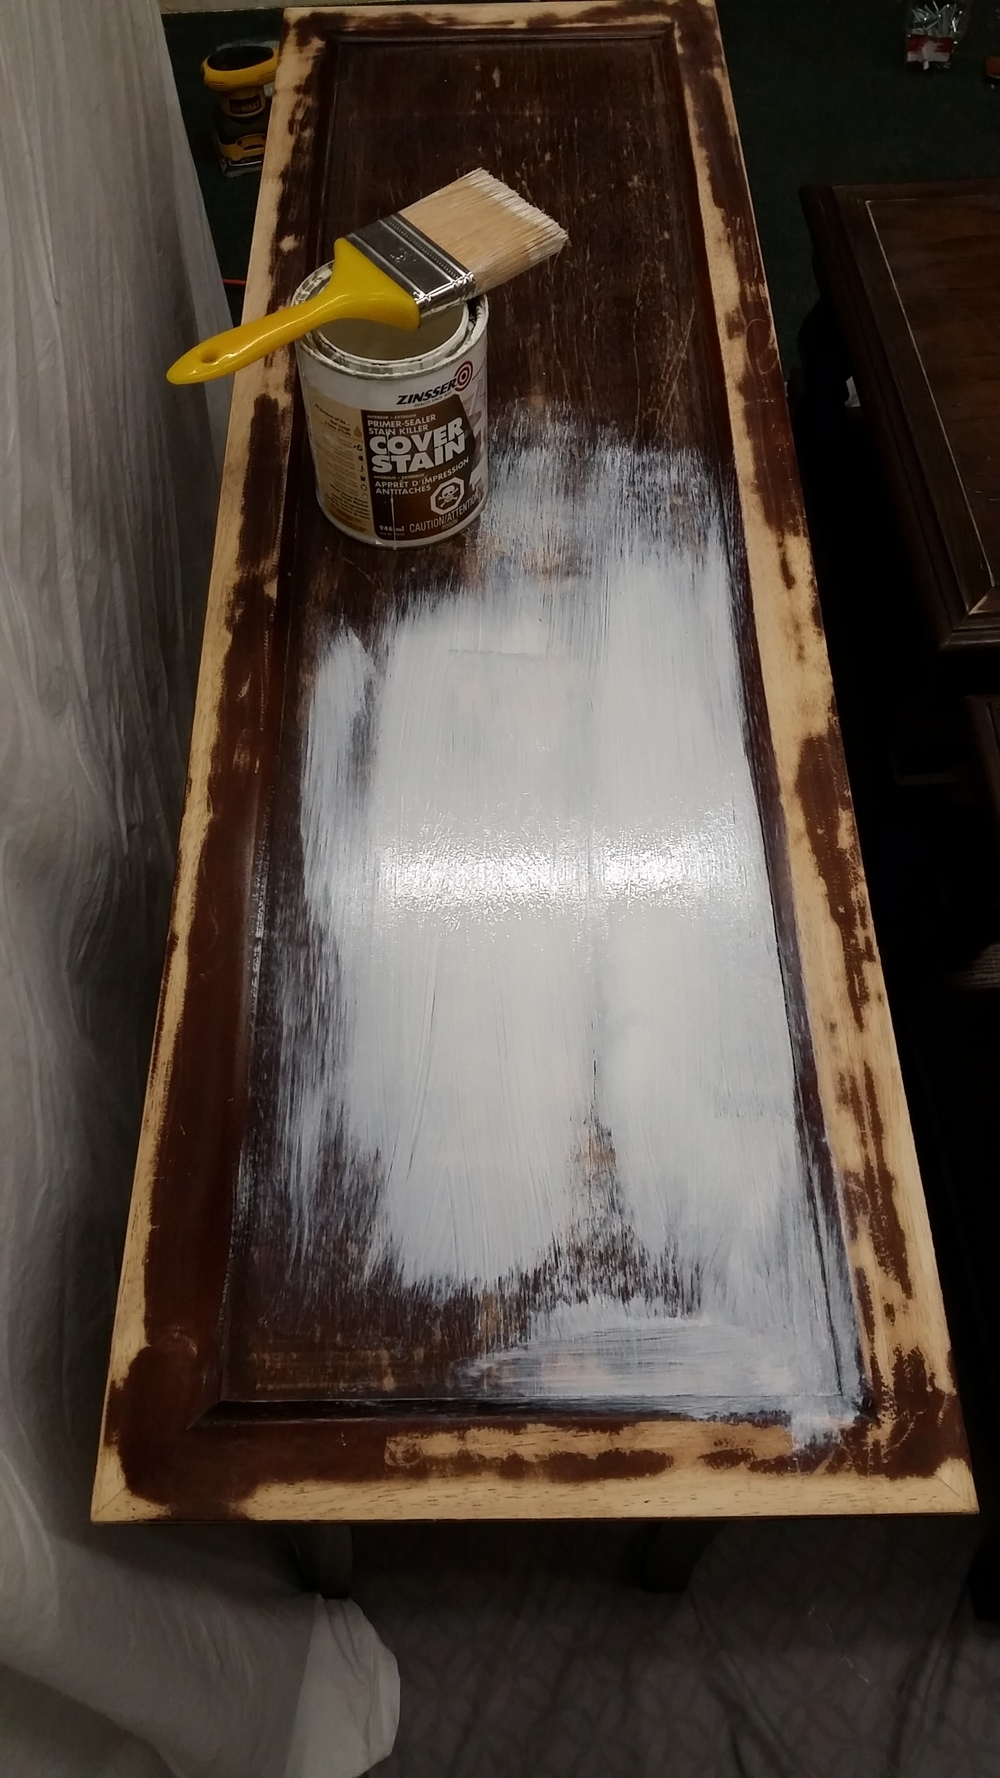 Make sure that before you put your primer on, the piece is sanded enough that there is not bubbling or loose chipping left over from the previous finish.